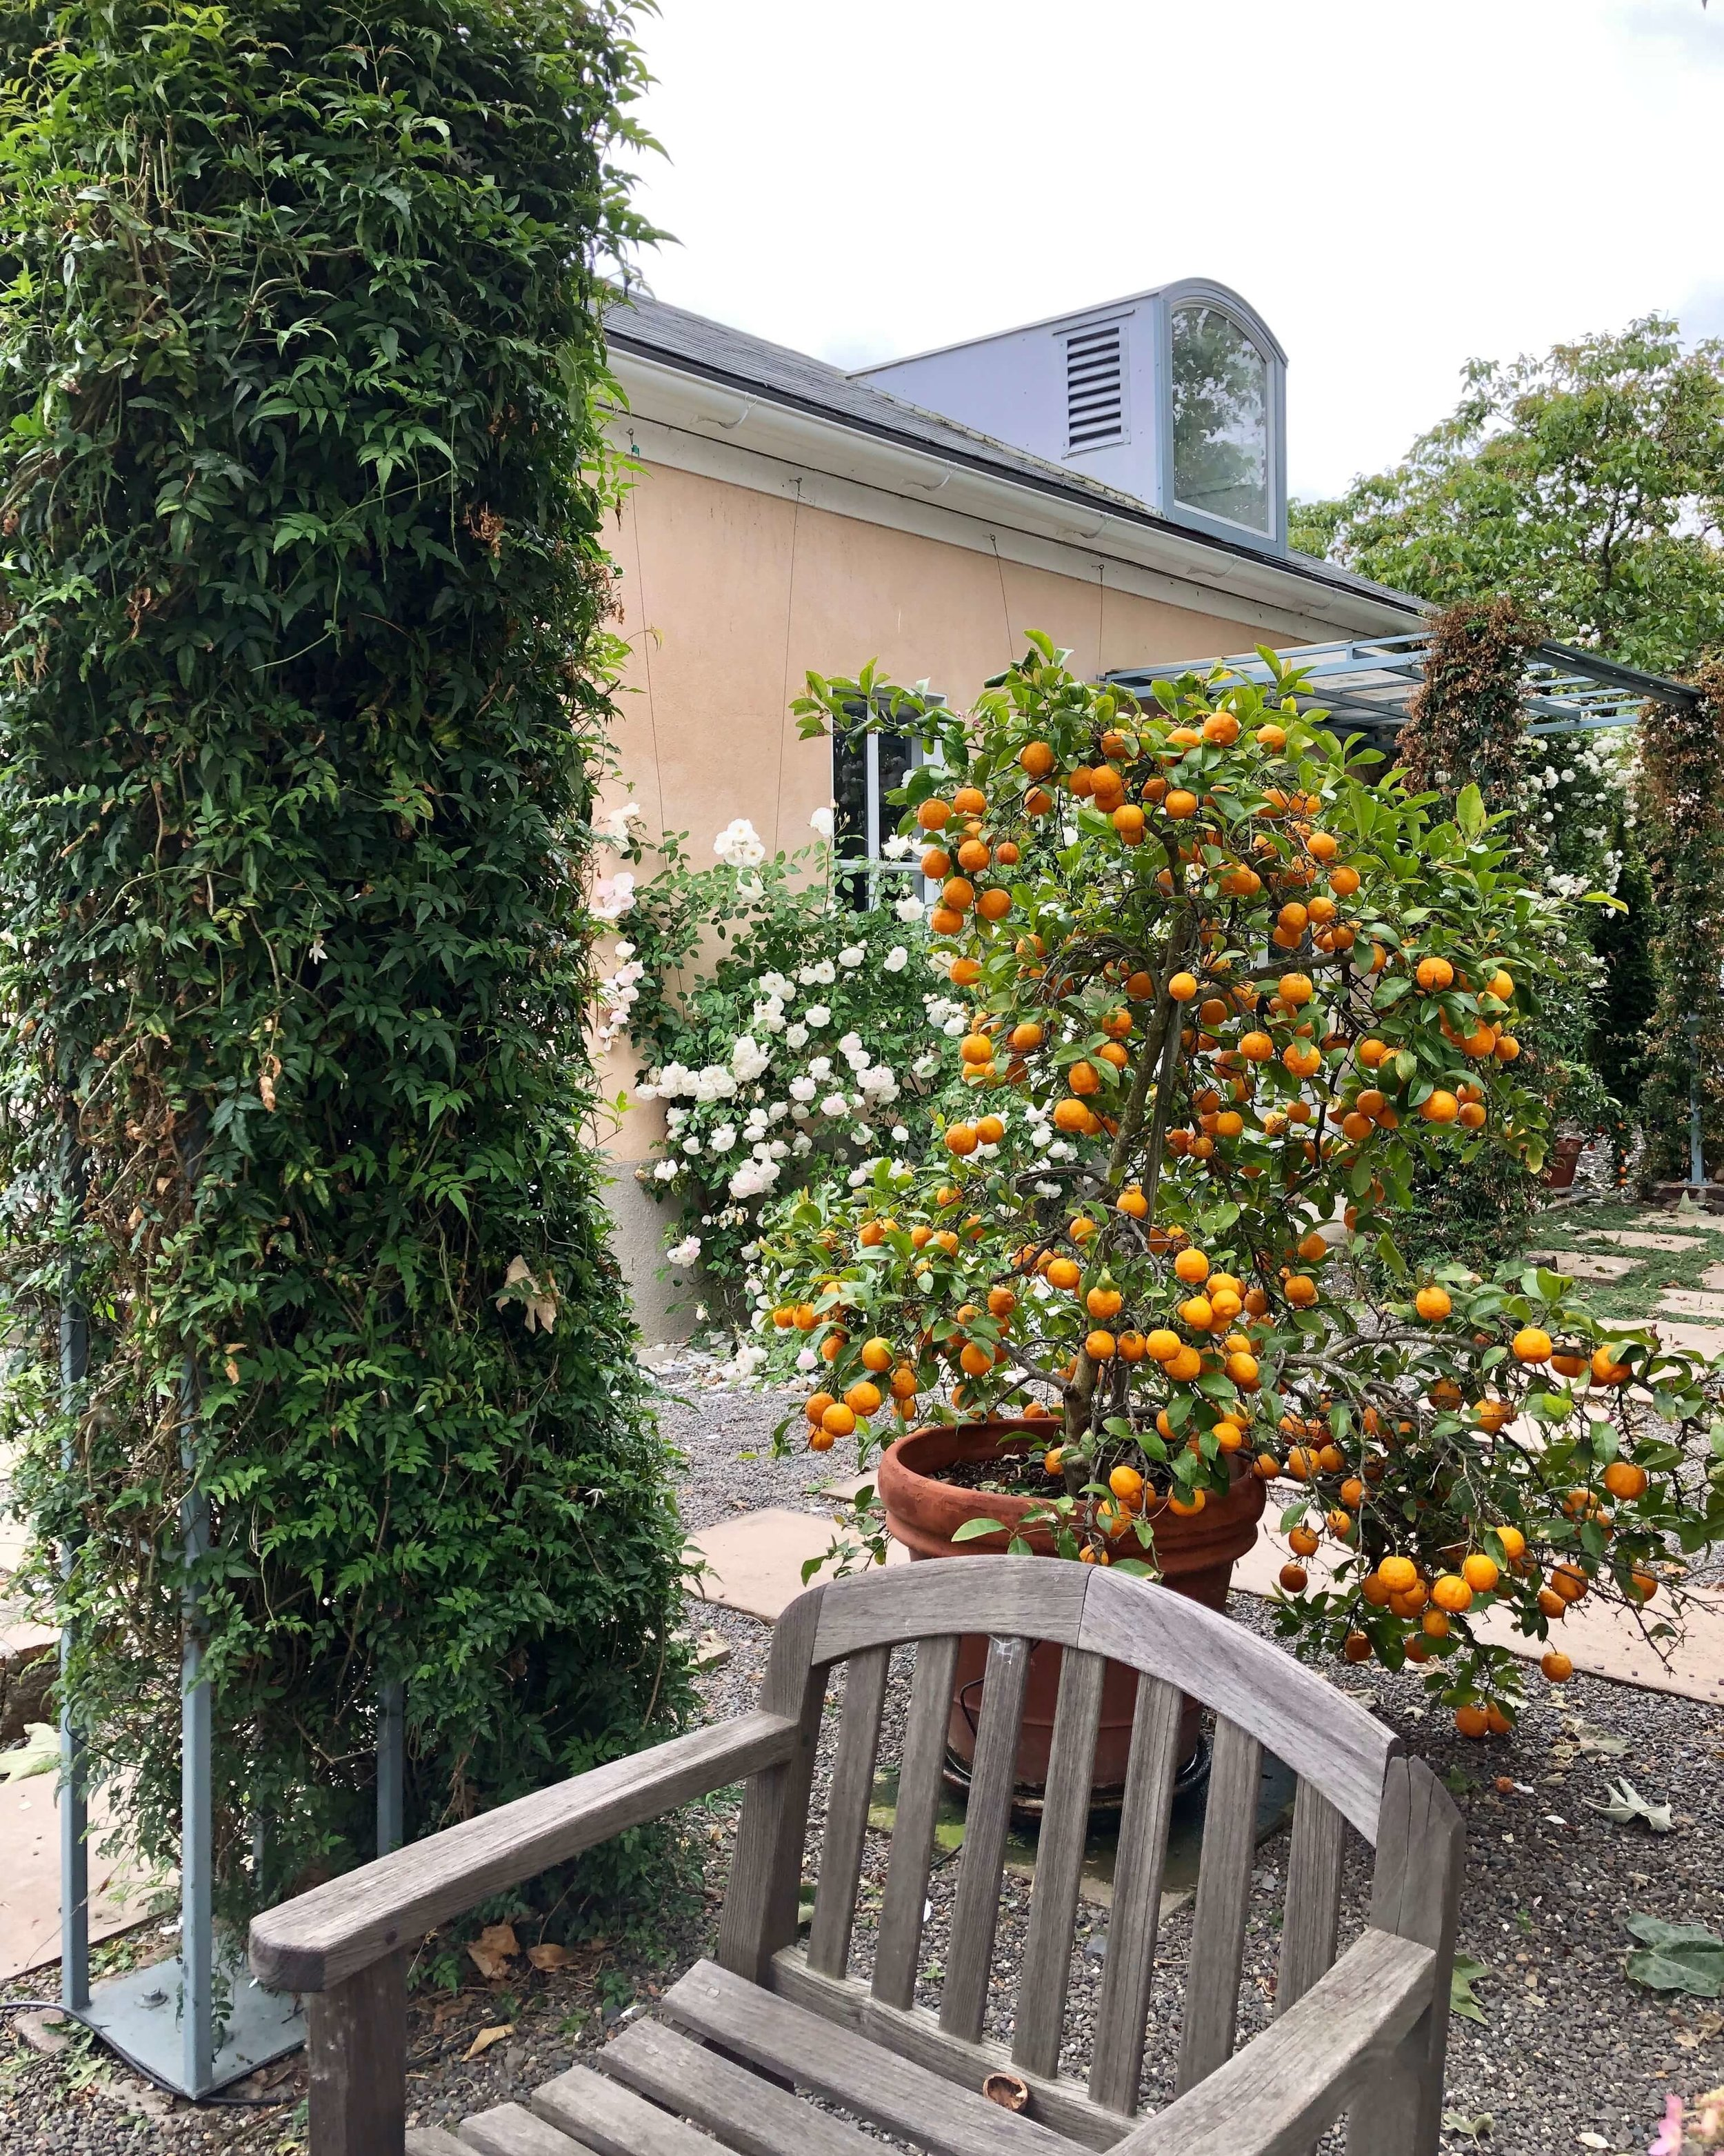 Trellised seating areas wrapped the sides of the main house of this Sonoma Airbnb. Orange trees and white rose bushes were loaded with fruit and flowers. #airbnb #winecountry